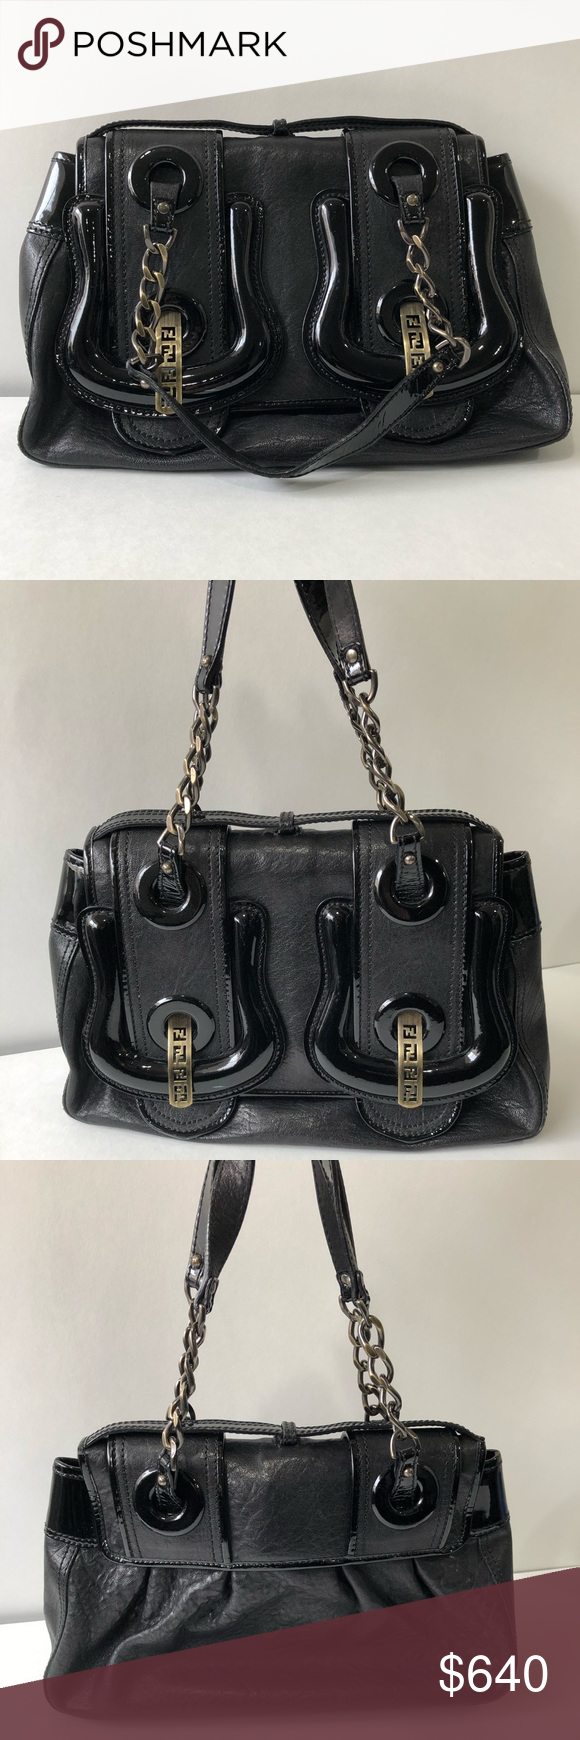 "9a0089415d Spotted while shopping on Poshmark  Fendi ""B"" Bag black leather shoulder bag !"